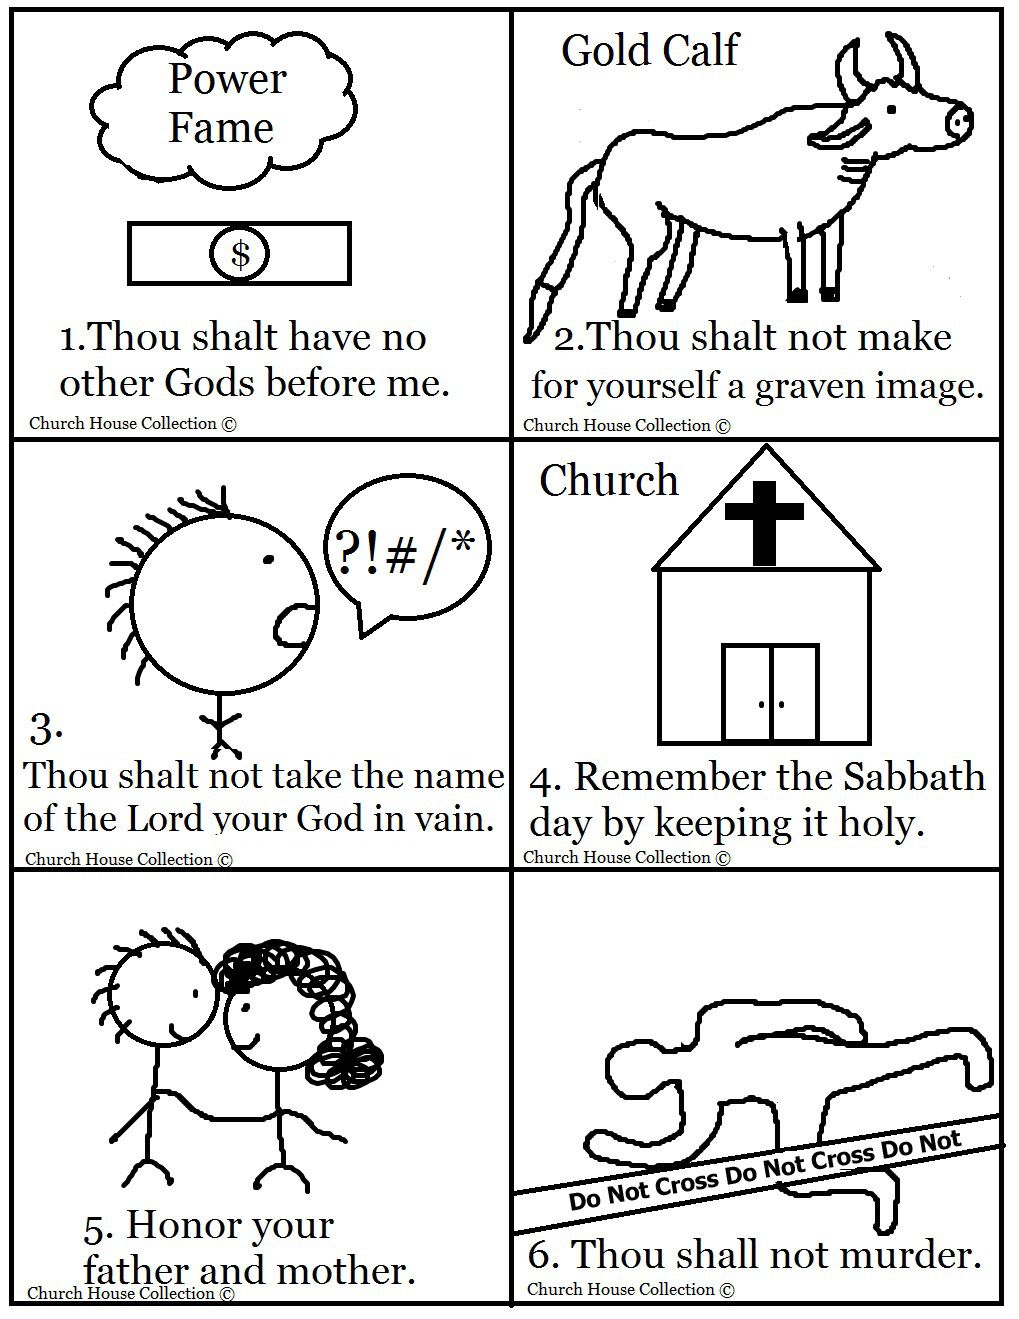 Adult Top 10 Commandments Coloring Page Gallery Images best 1000 images about sunday school stuff on pinterest ten commandments coloring sheets and pages images